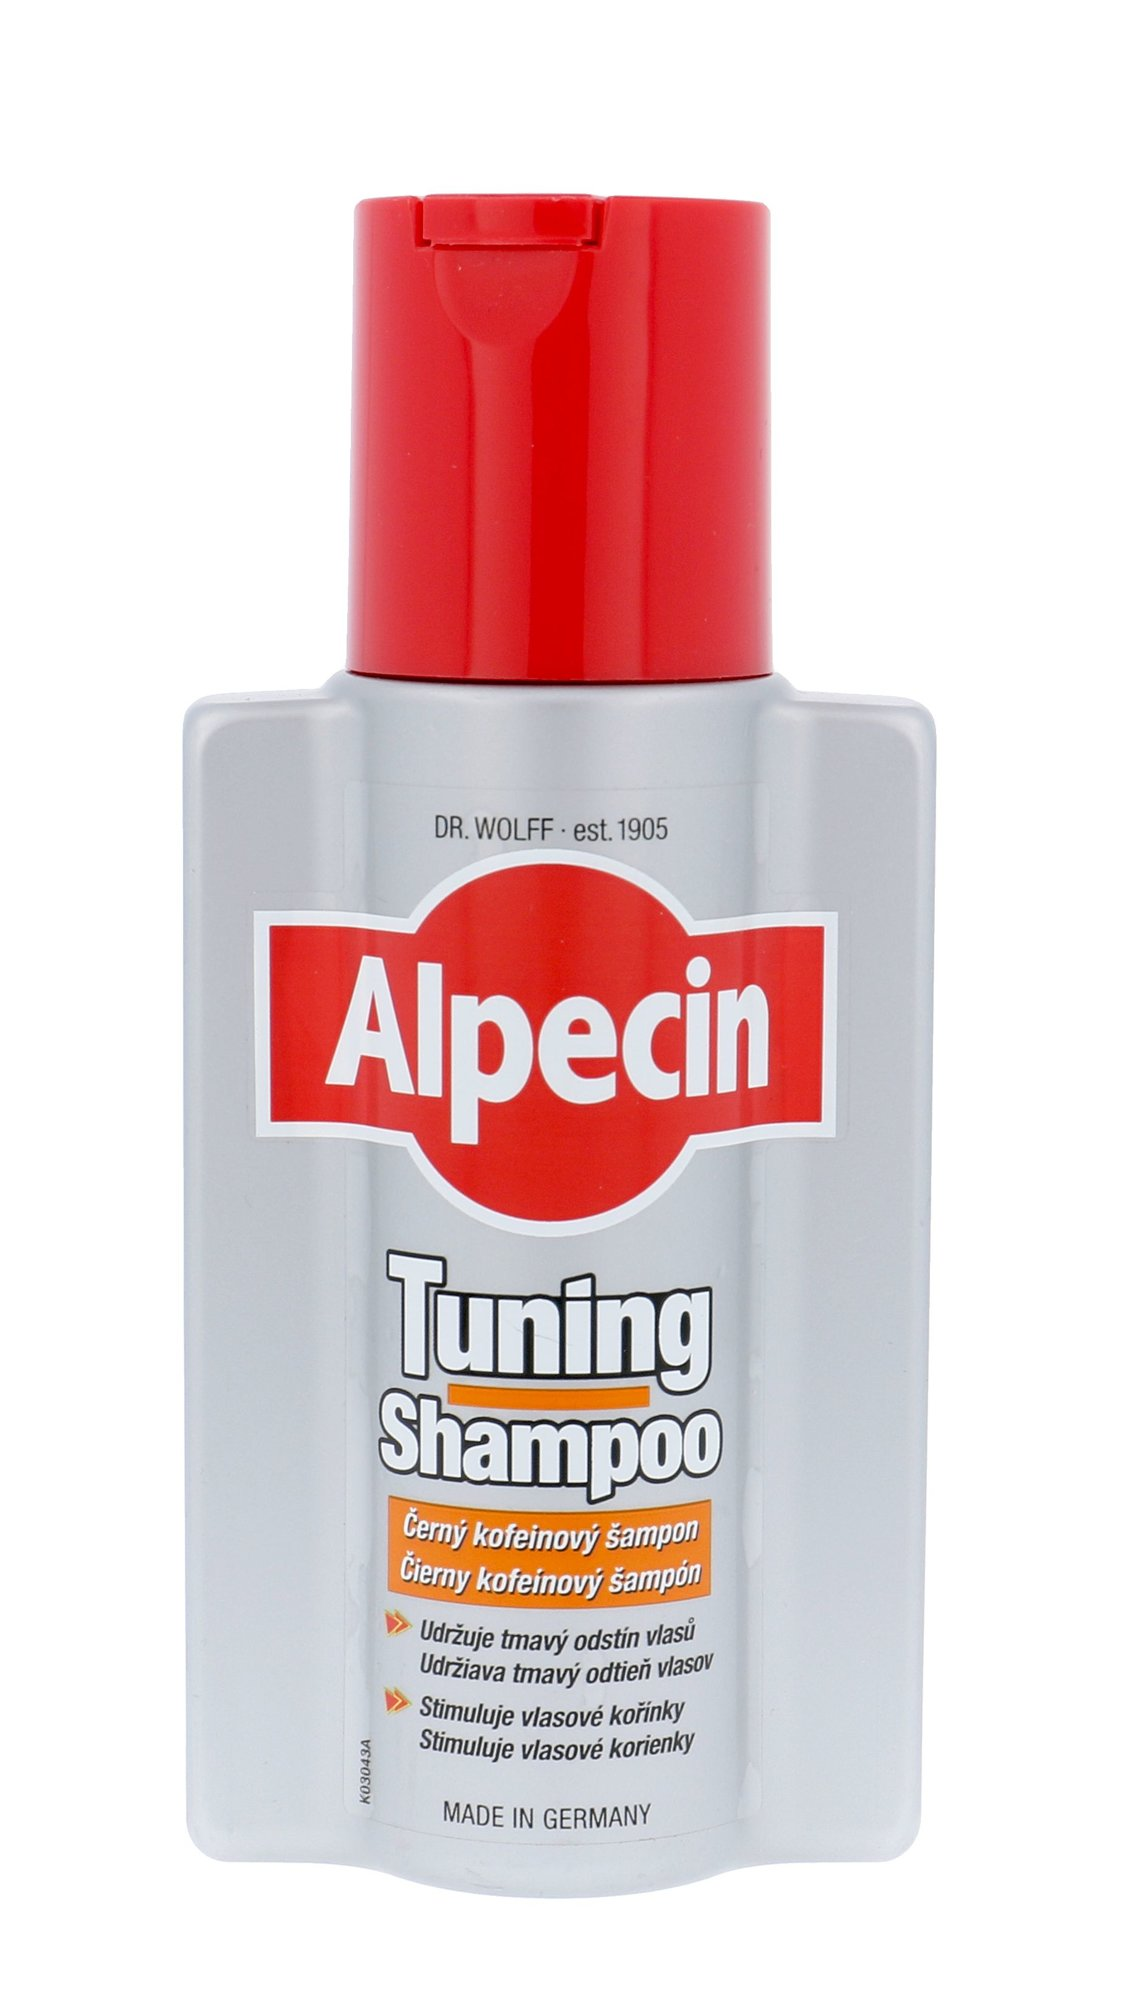 Alpecin Tuning Shampoo Cosmetic 200ml